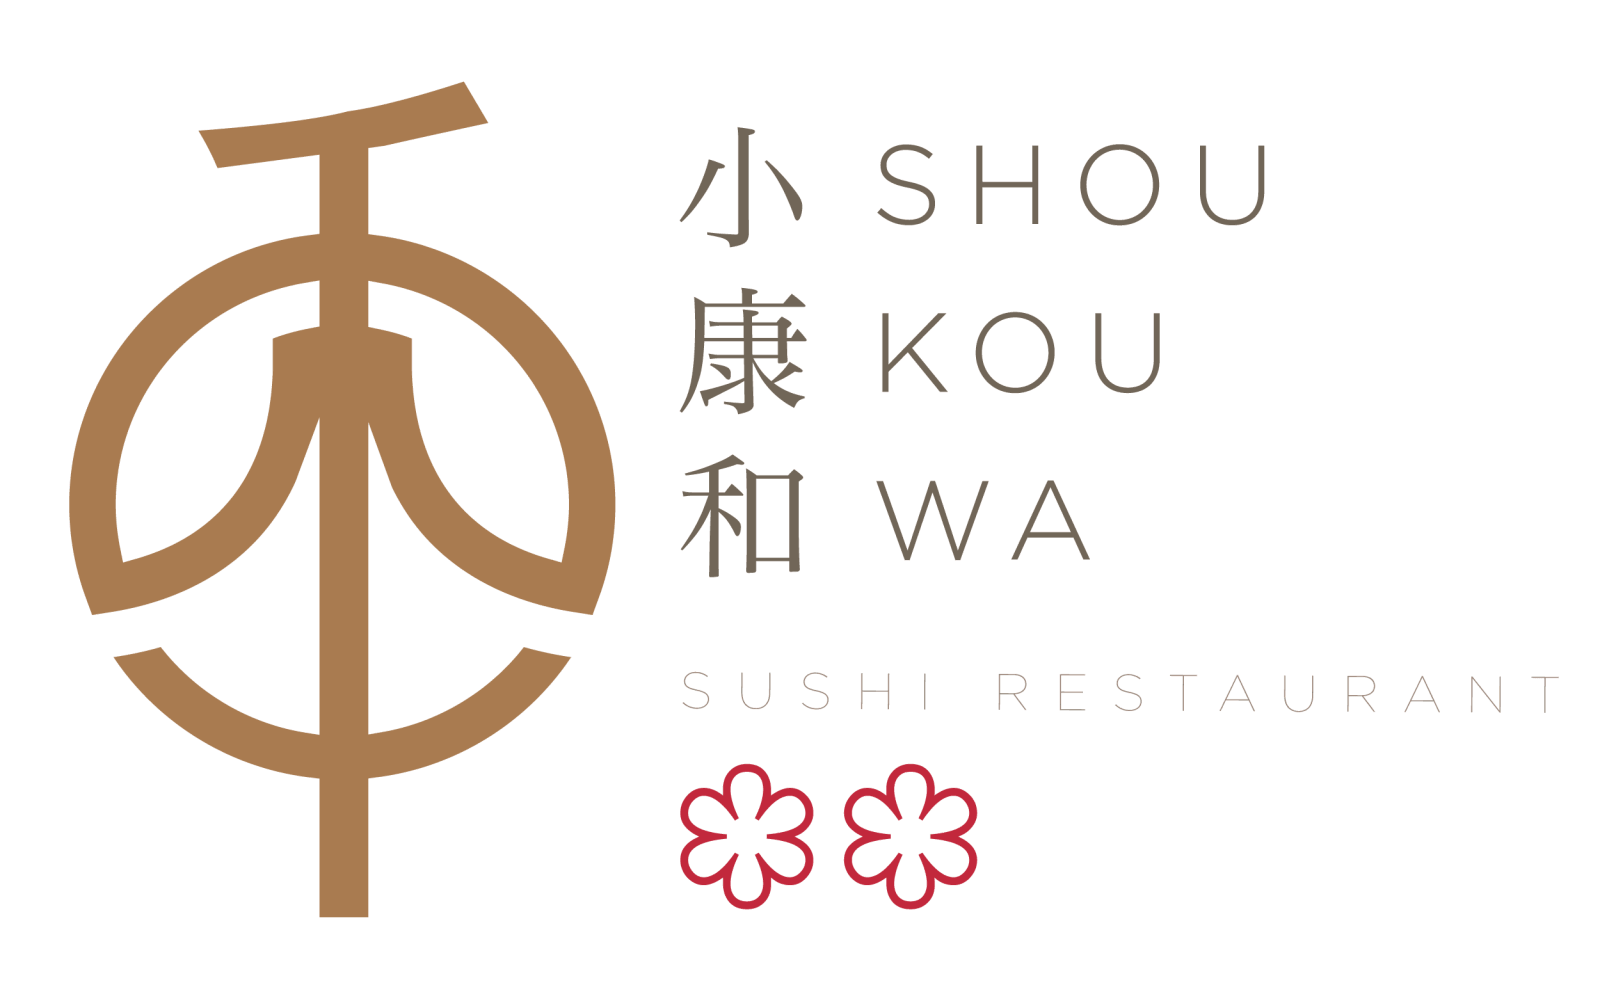 Shoukouwa logo